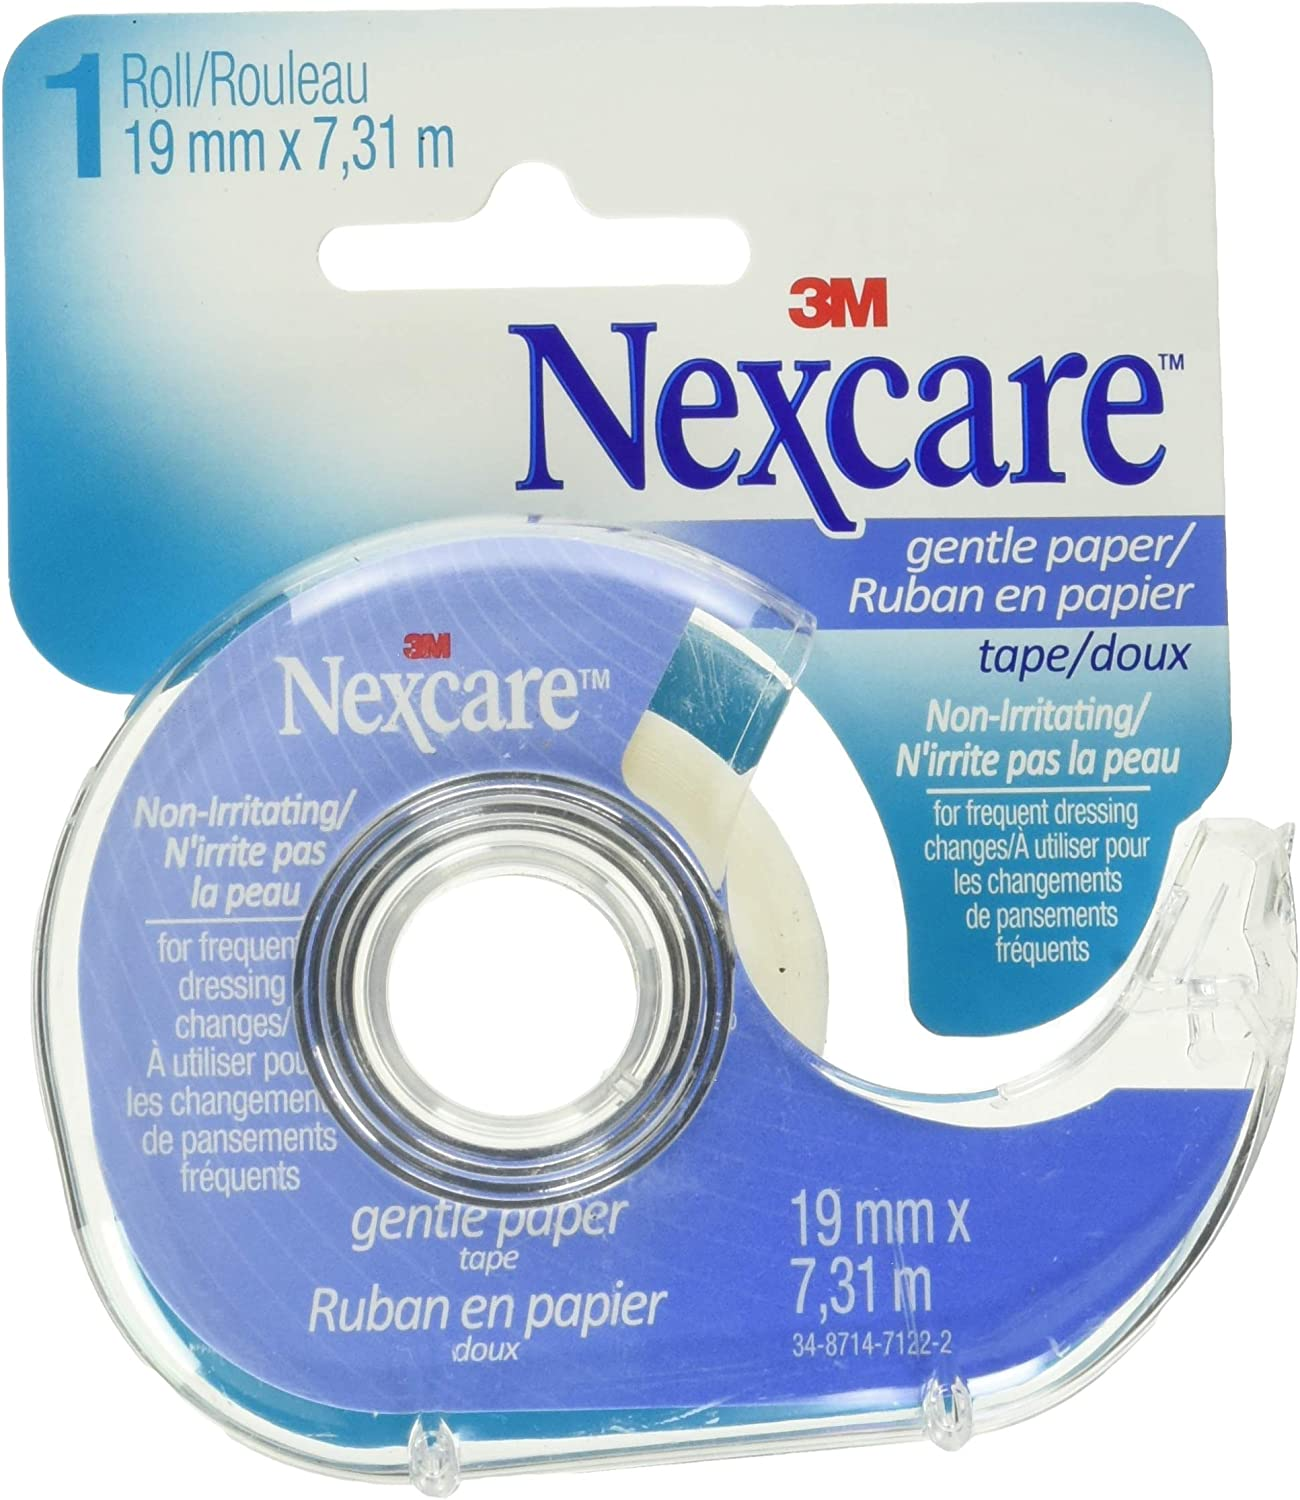 Nexcare Gentle Paper Tape With Dispenser, Tears Easily: Health & Personal Care